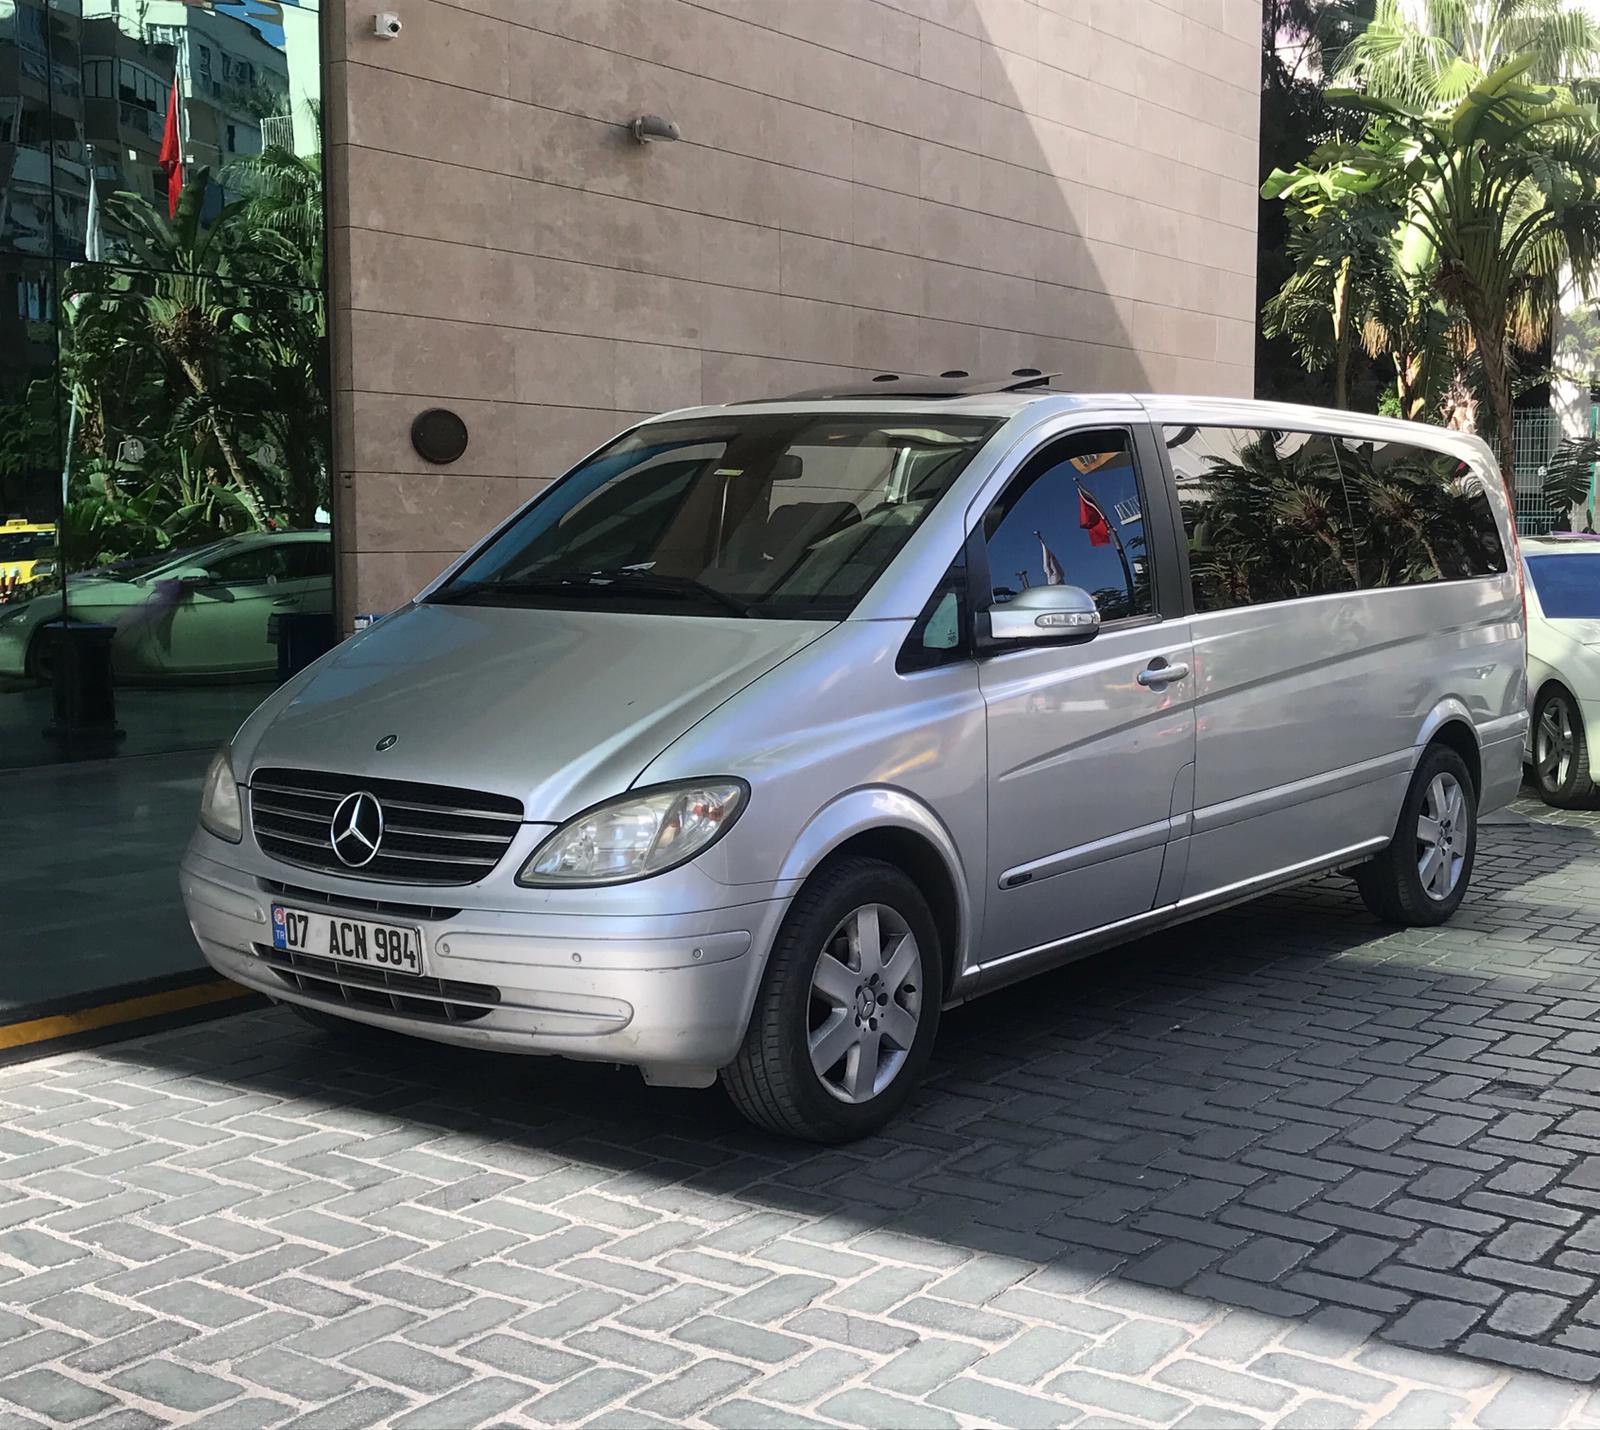 ARACIMIZ MERCEDES VİANO LONG